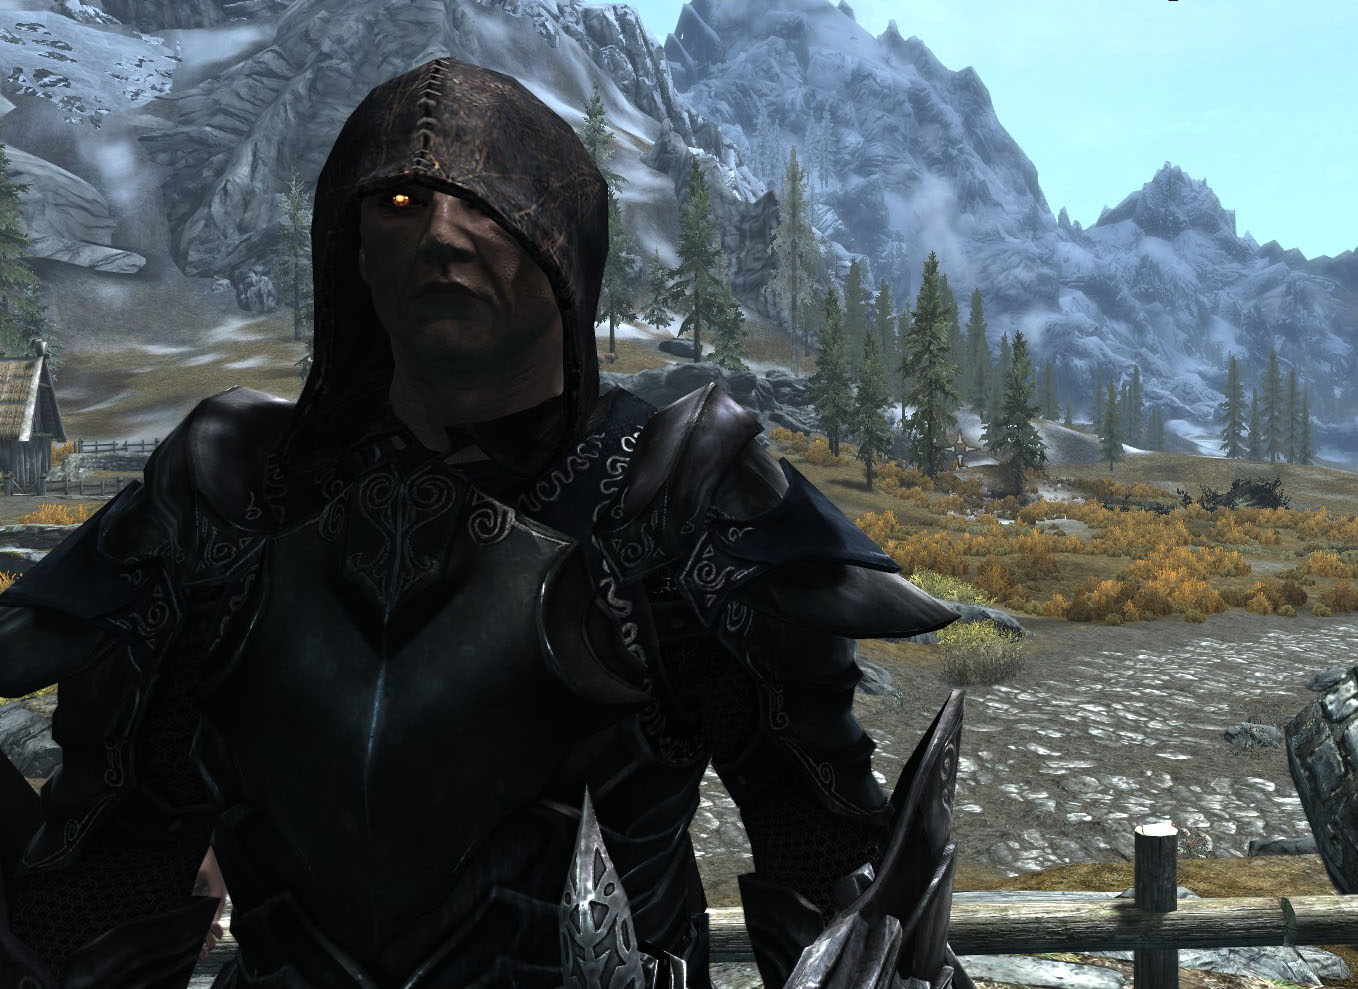 Vampire Clothing Bug Fix Project At Skyrim Nexus Mods And Community